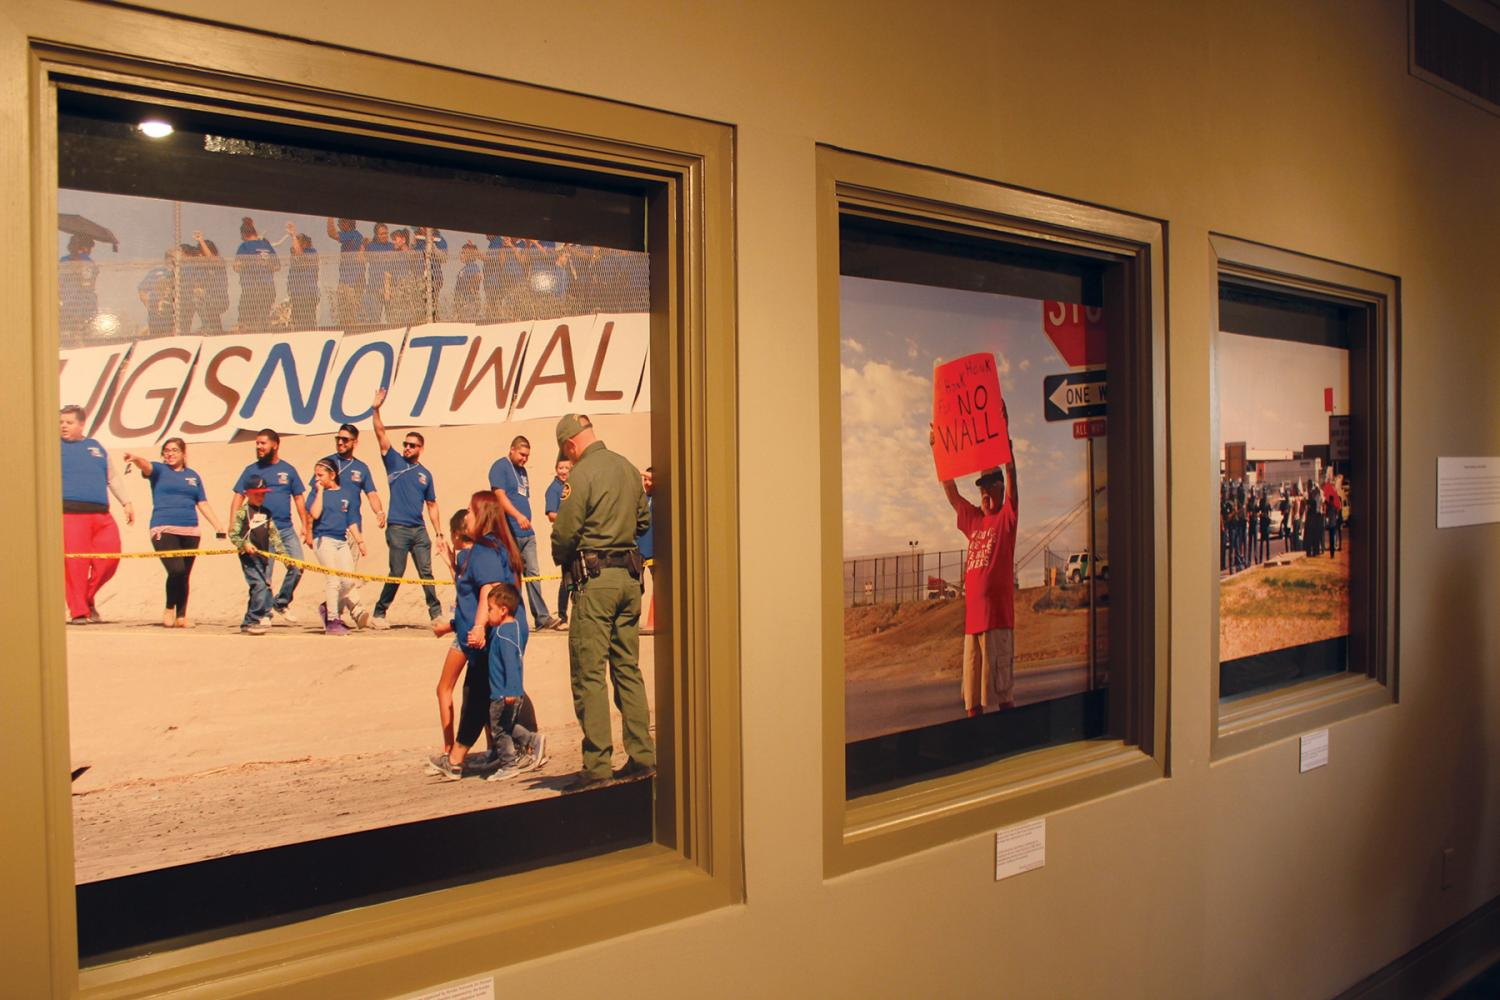 Both exhibits will be featured until Dec. 16 at the Centennial Museum.